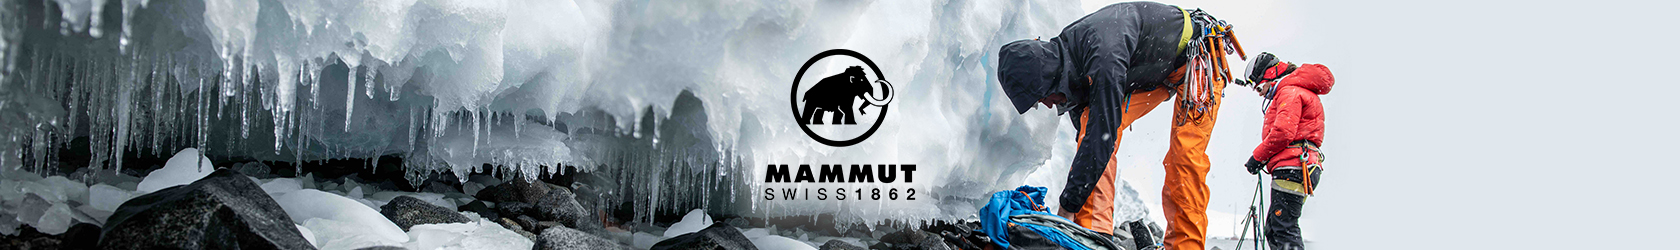 People are by a snow rock, preparing to climb, wearing and using Mammut gear.